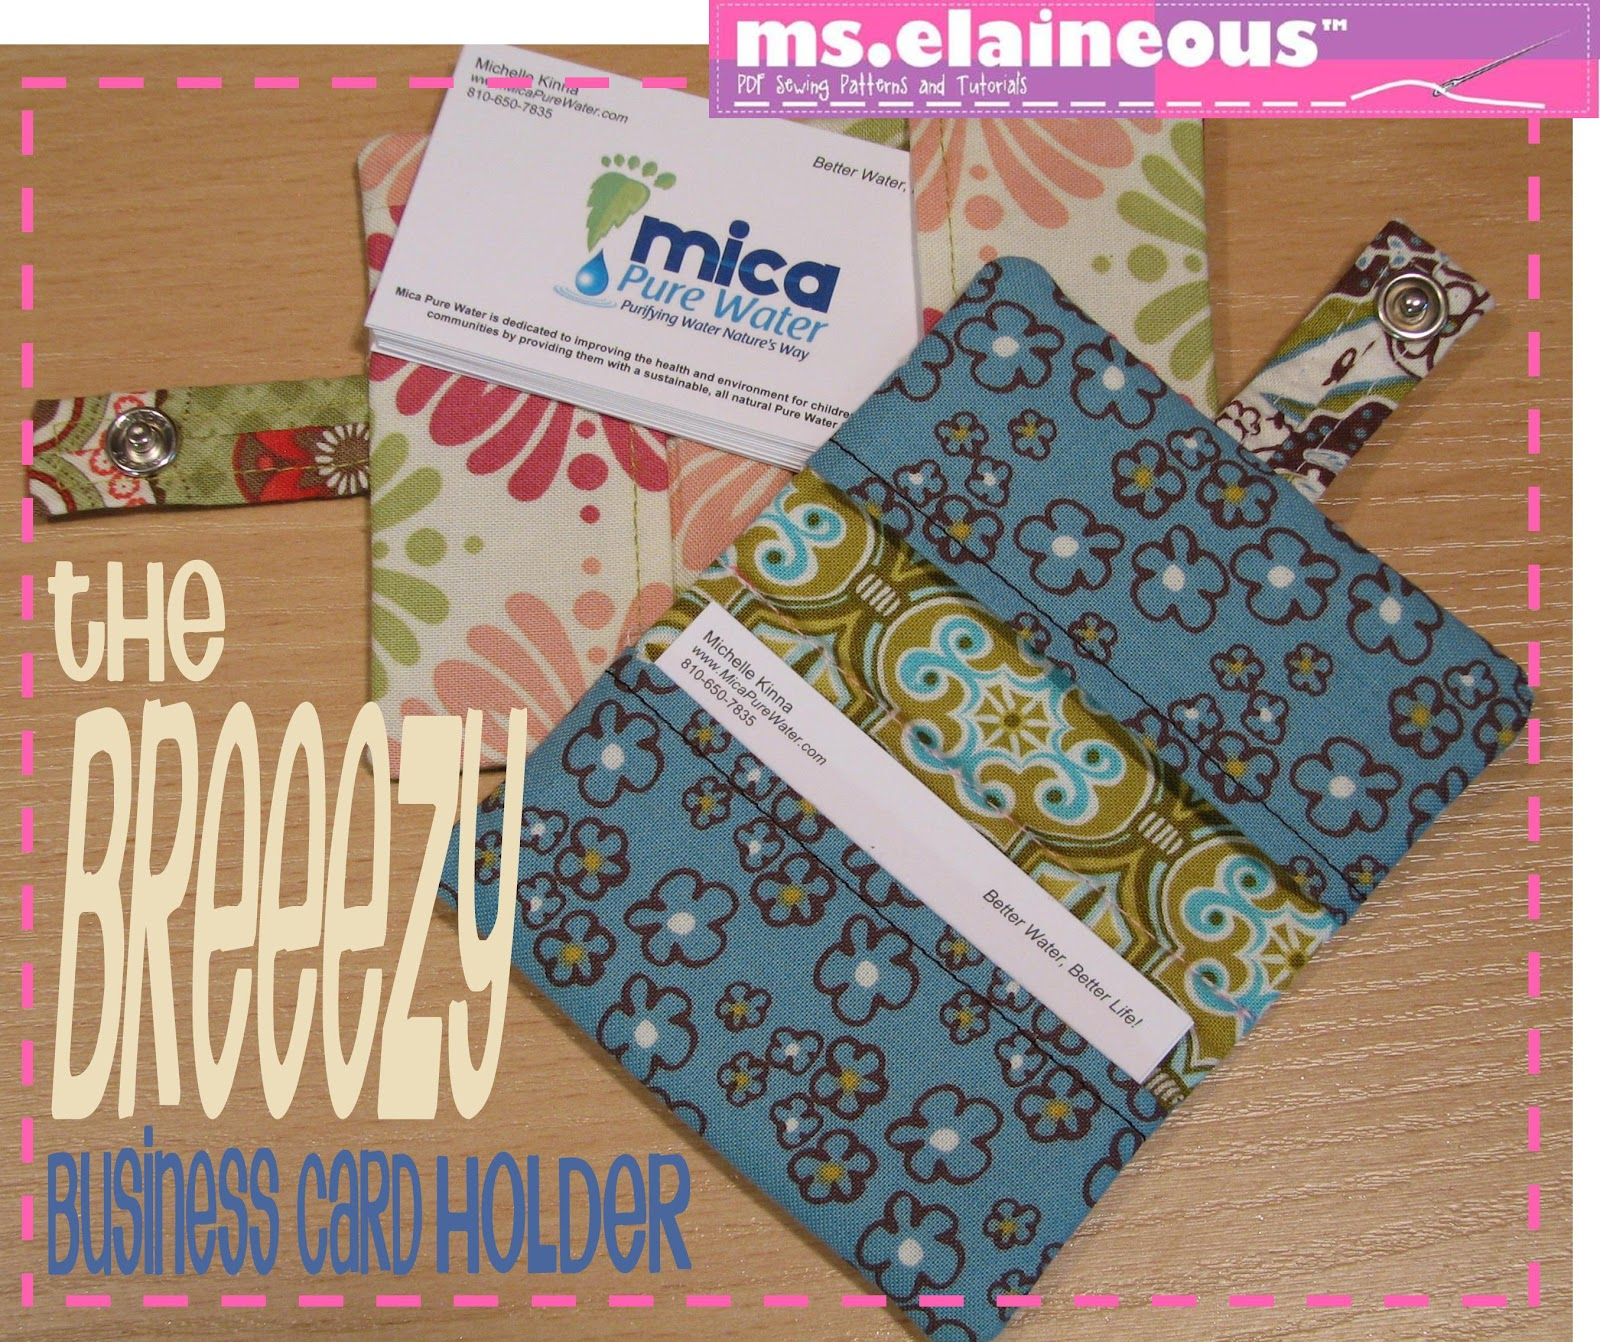 Ms. Elaineous Teaches Sewing: The Breezy Business Card